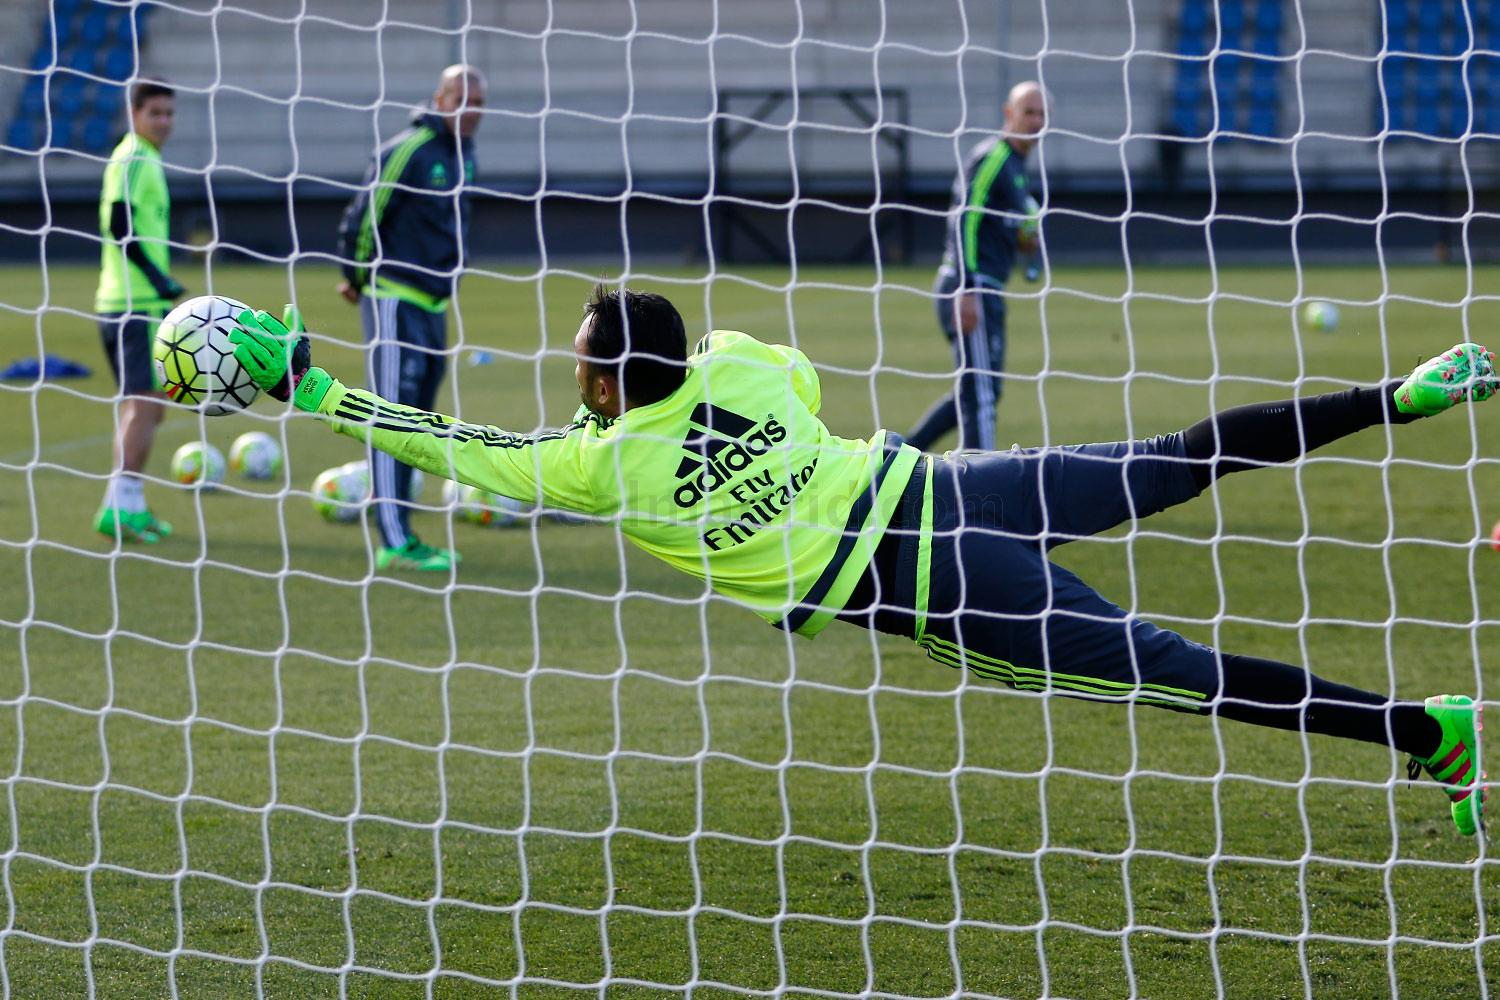 Real Madrid - Entrenamiento del Real Madrid - 25-02-2016